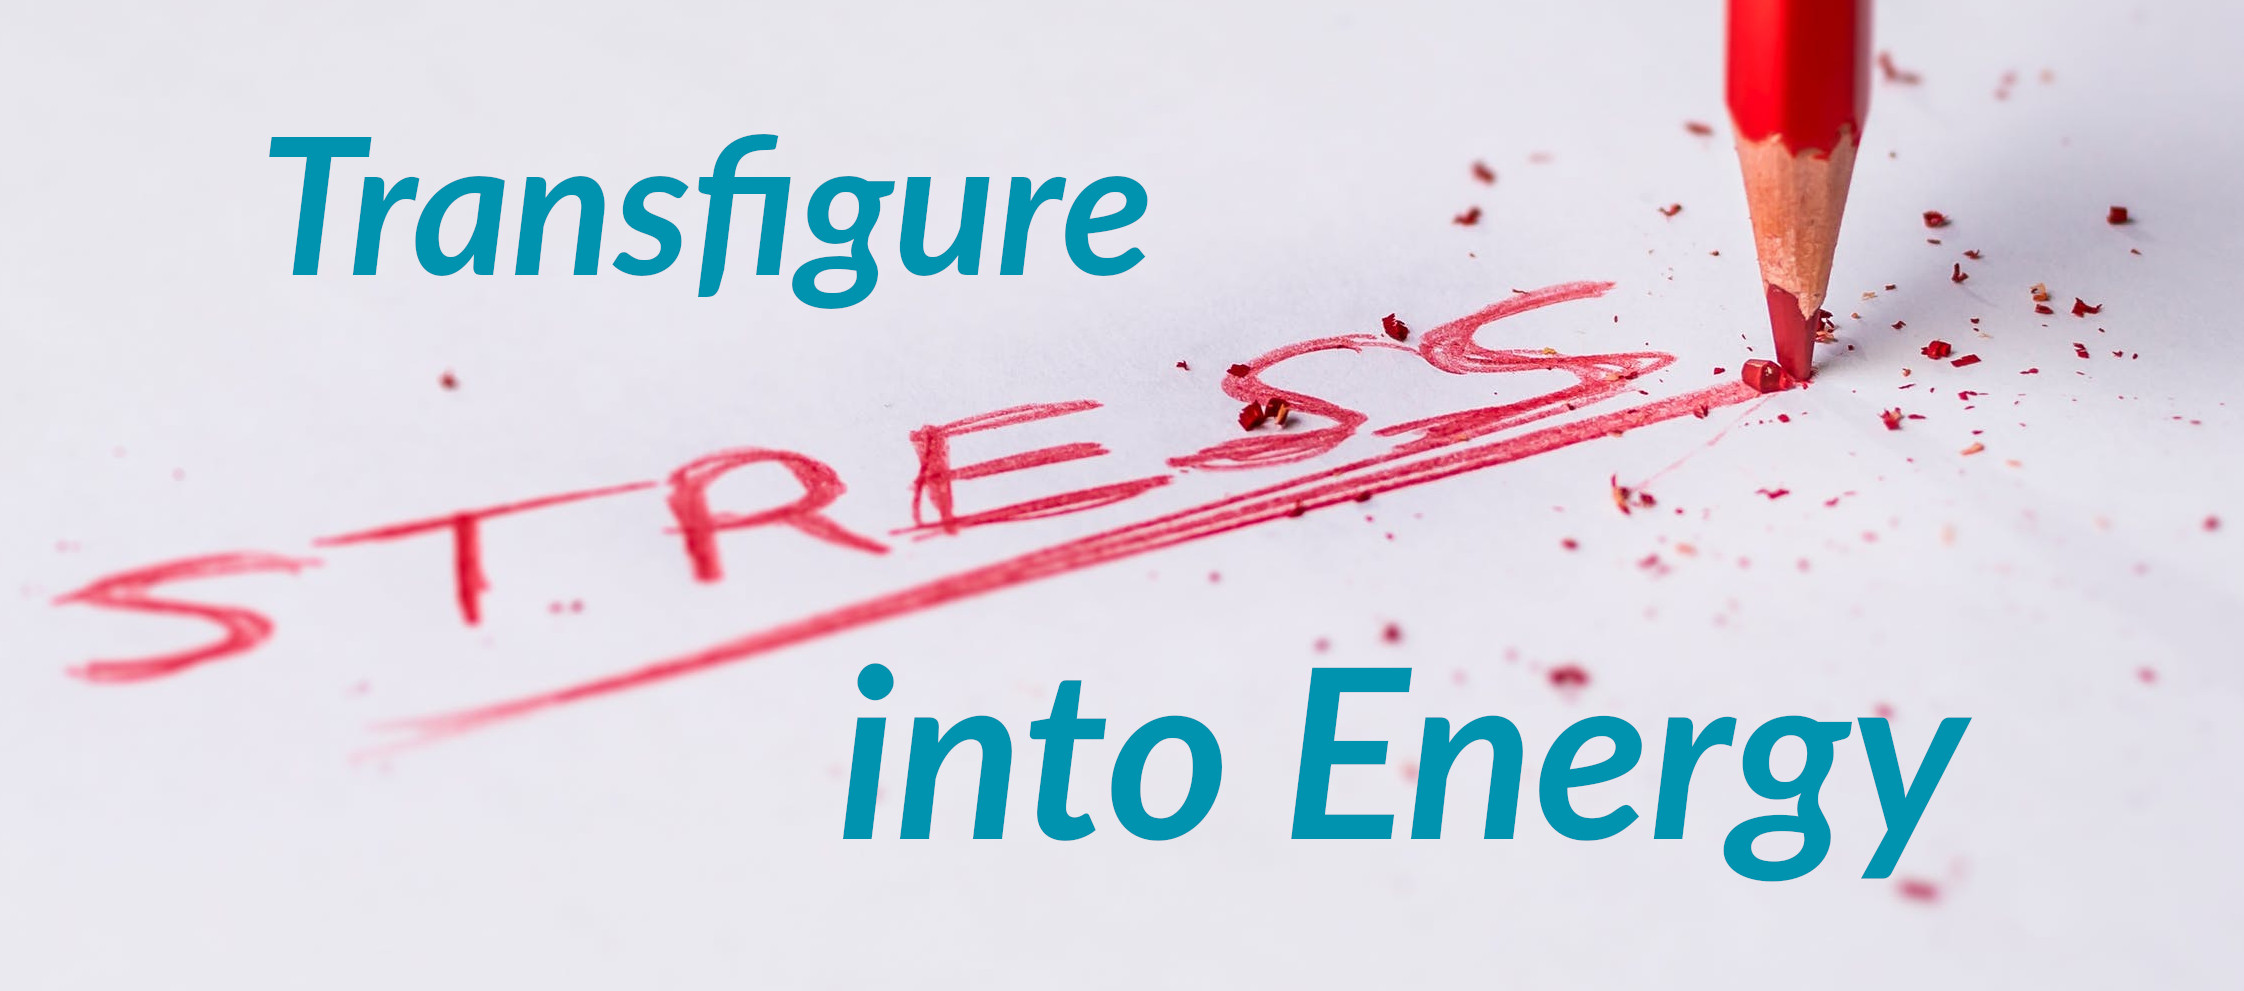 Trasfigure Stress Into Energy